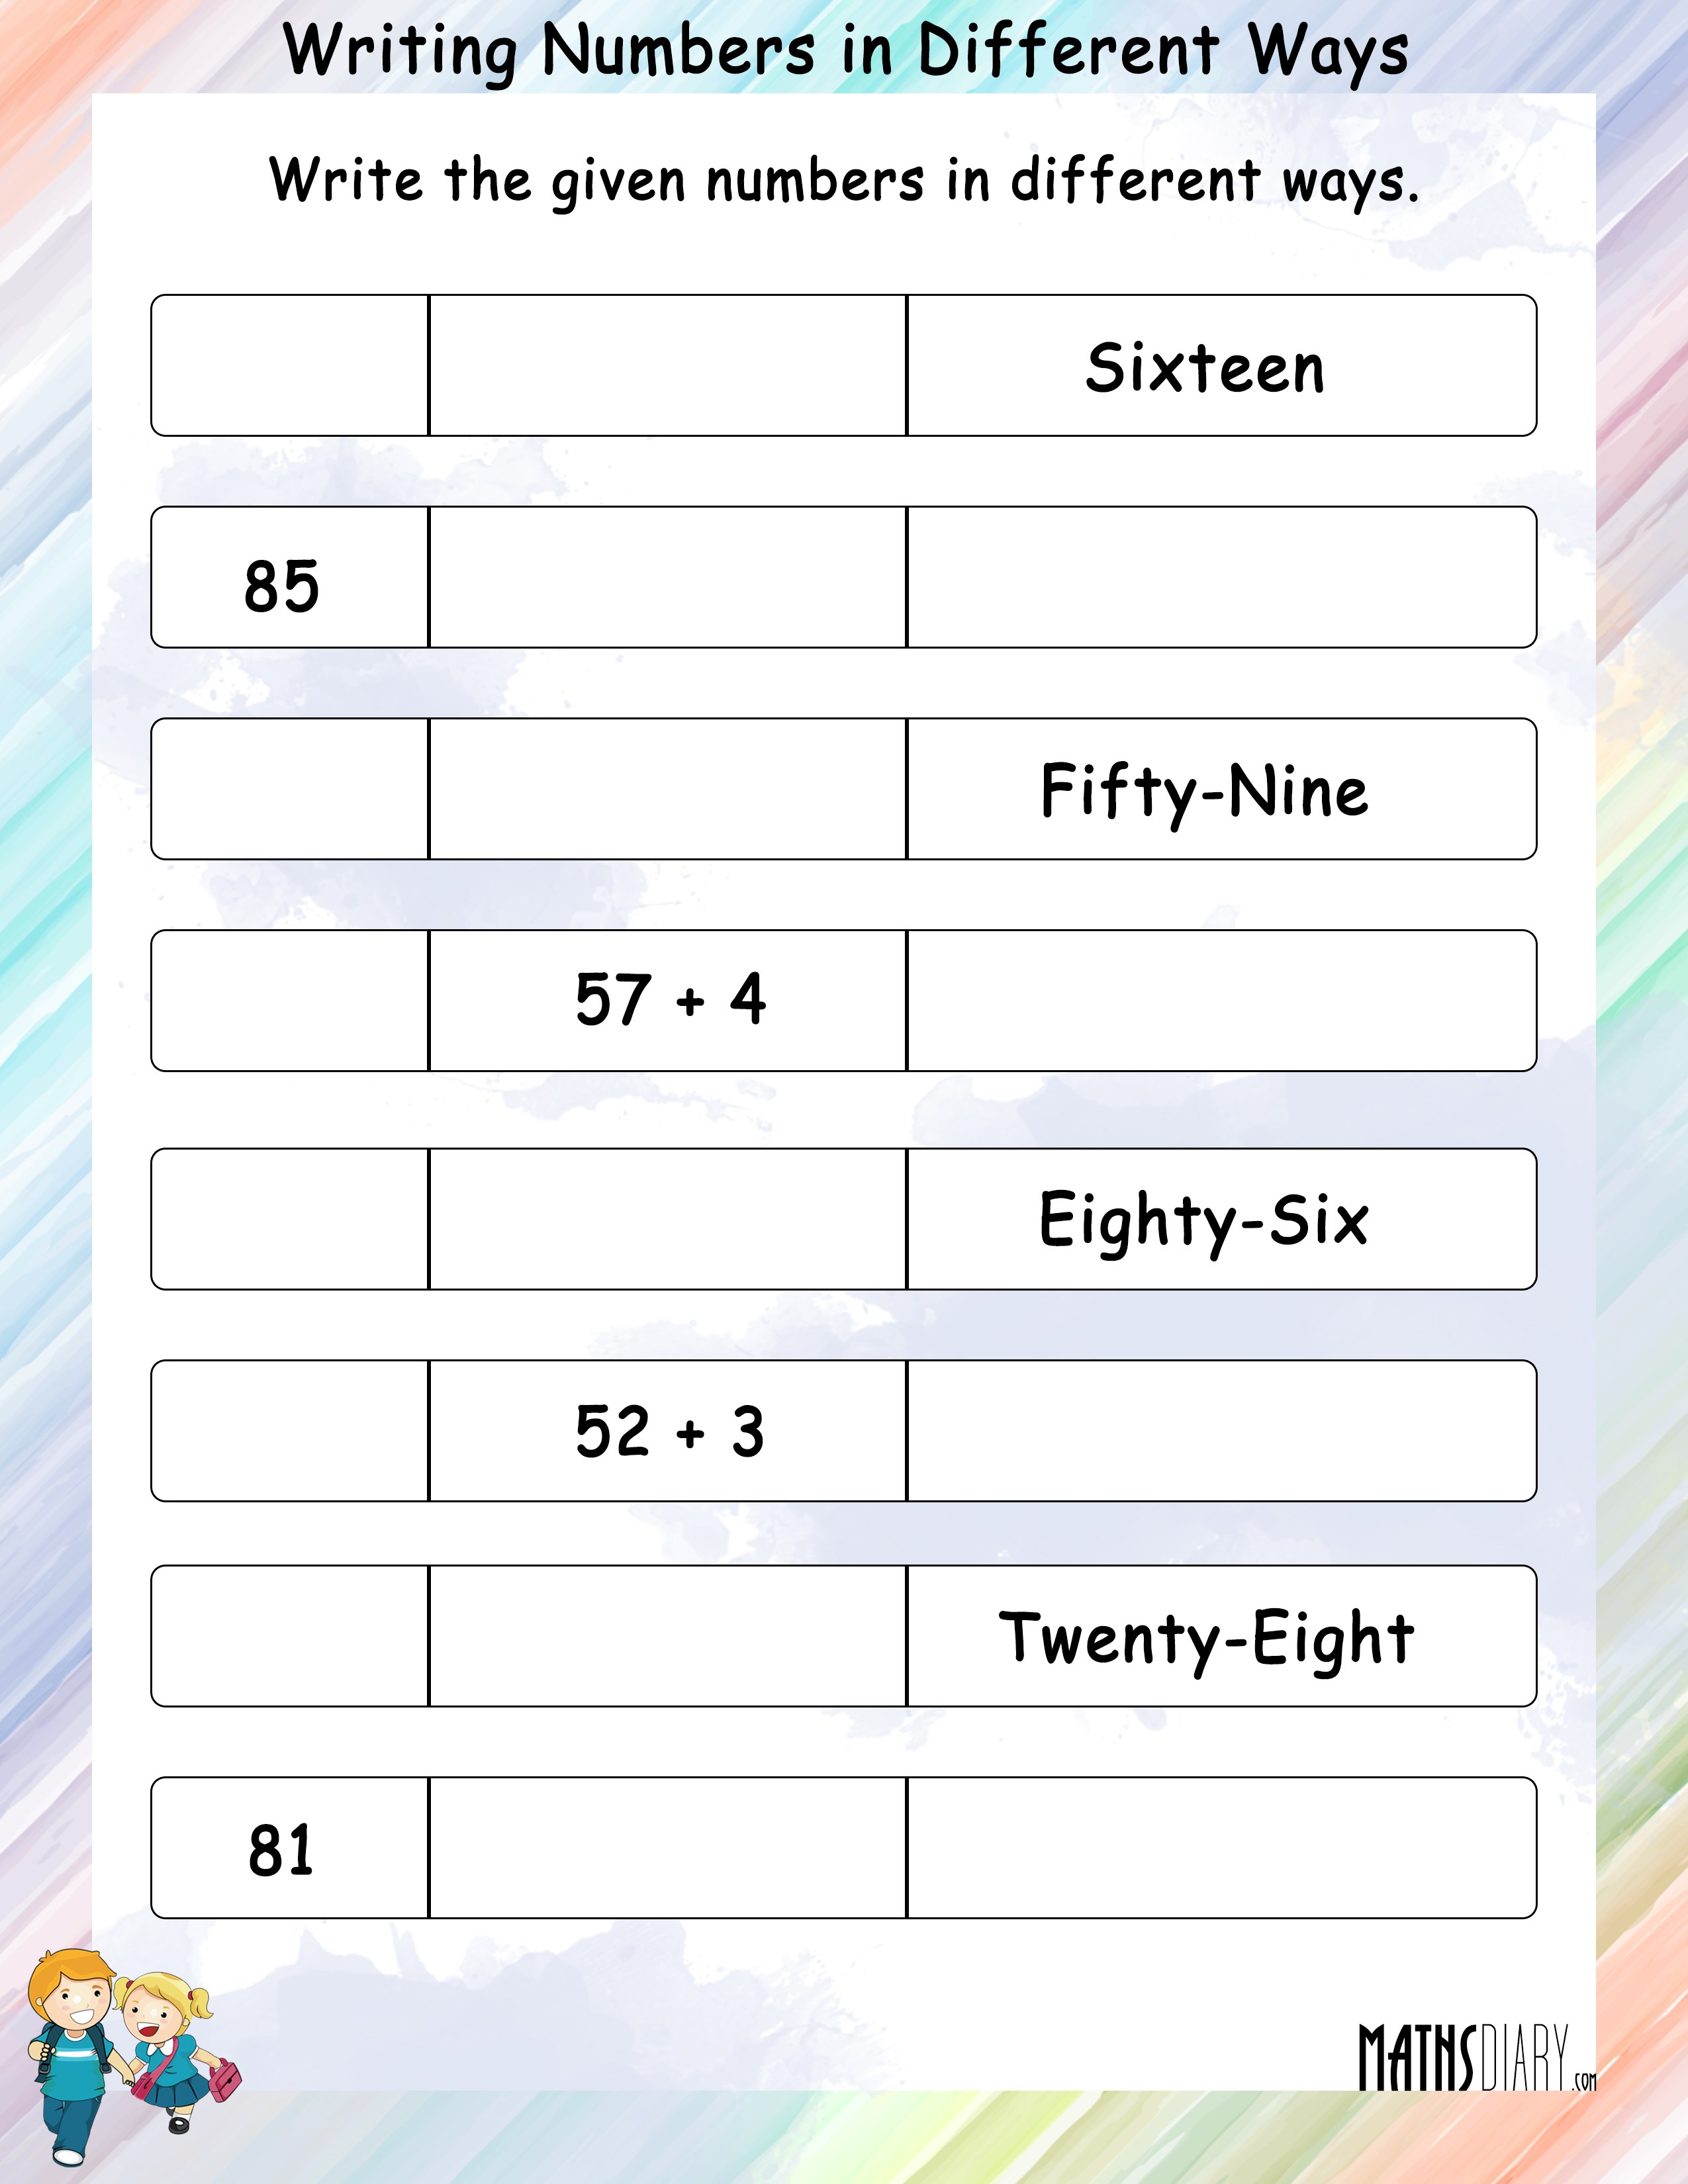 Writing Numbers In Different Ways